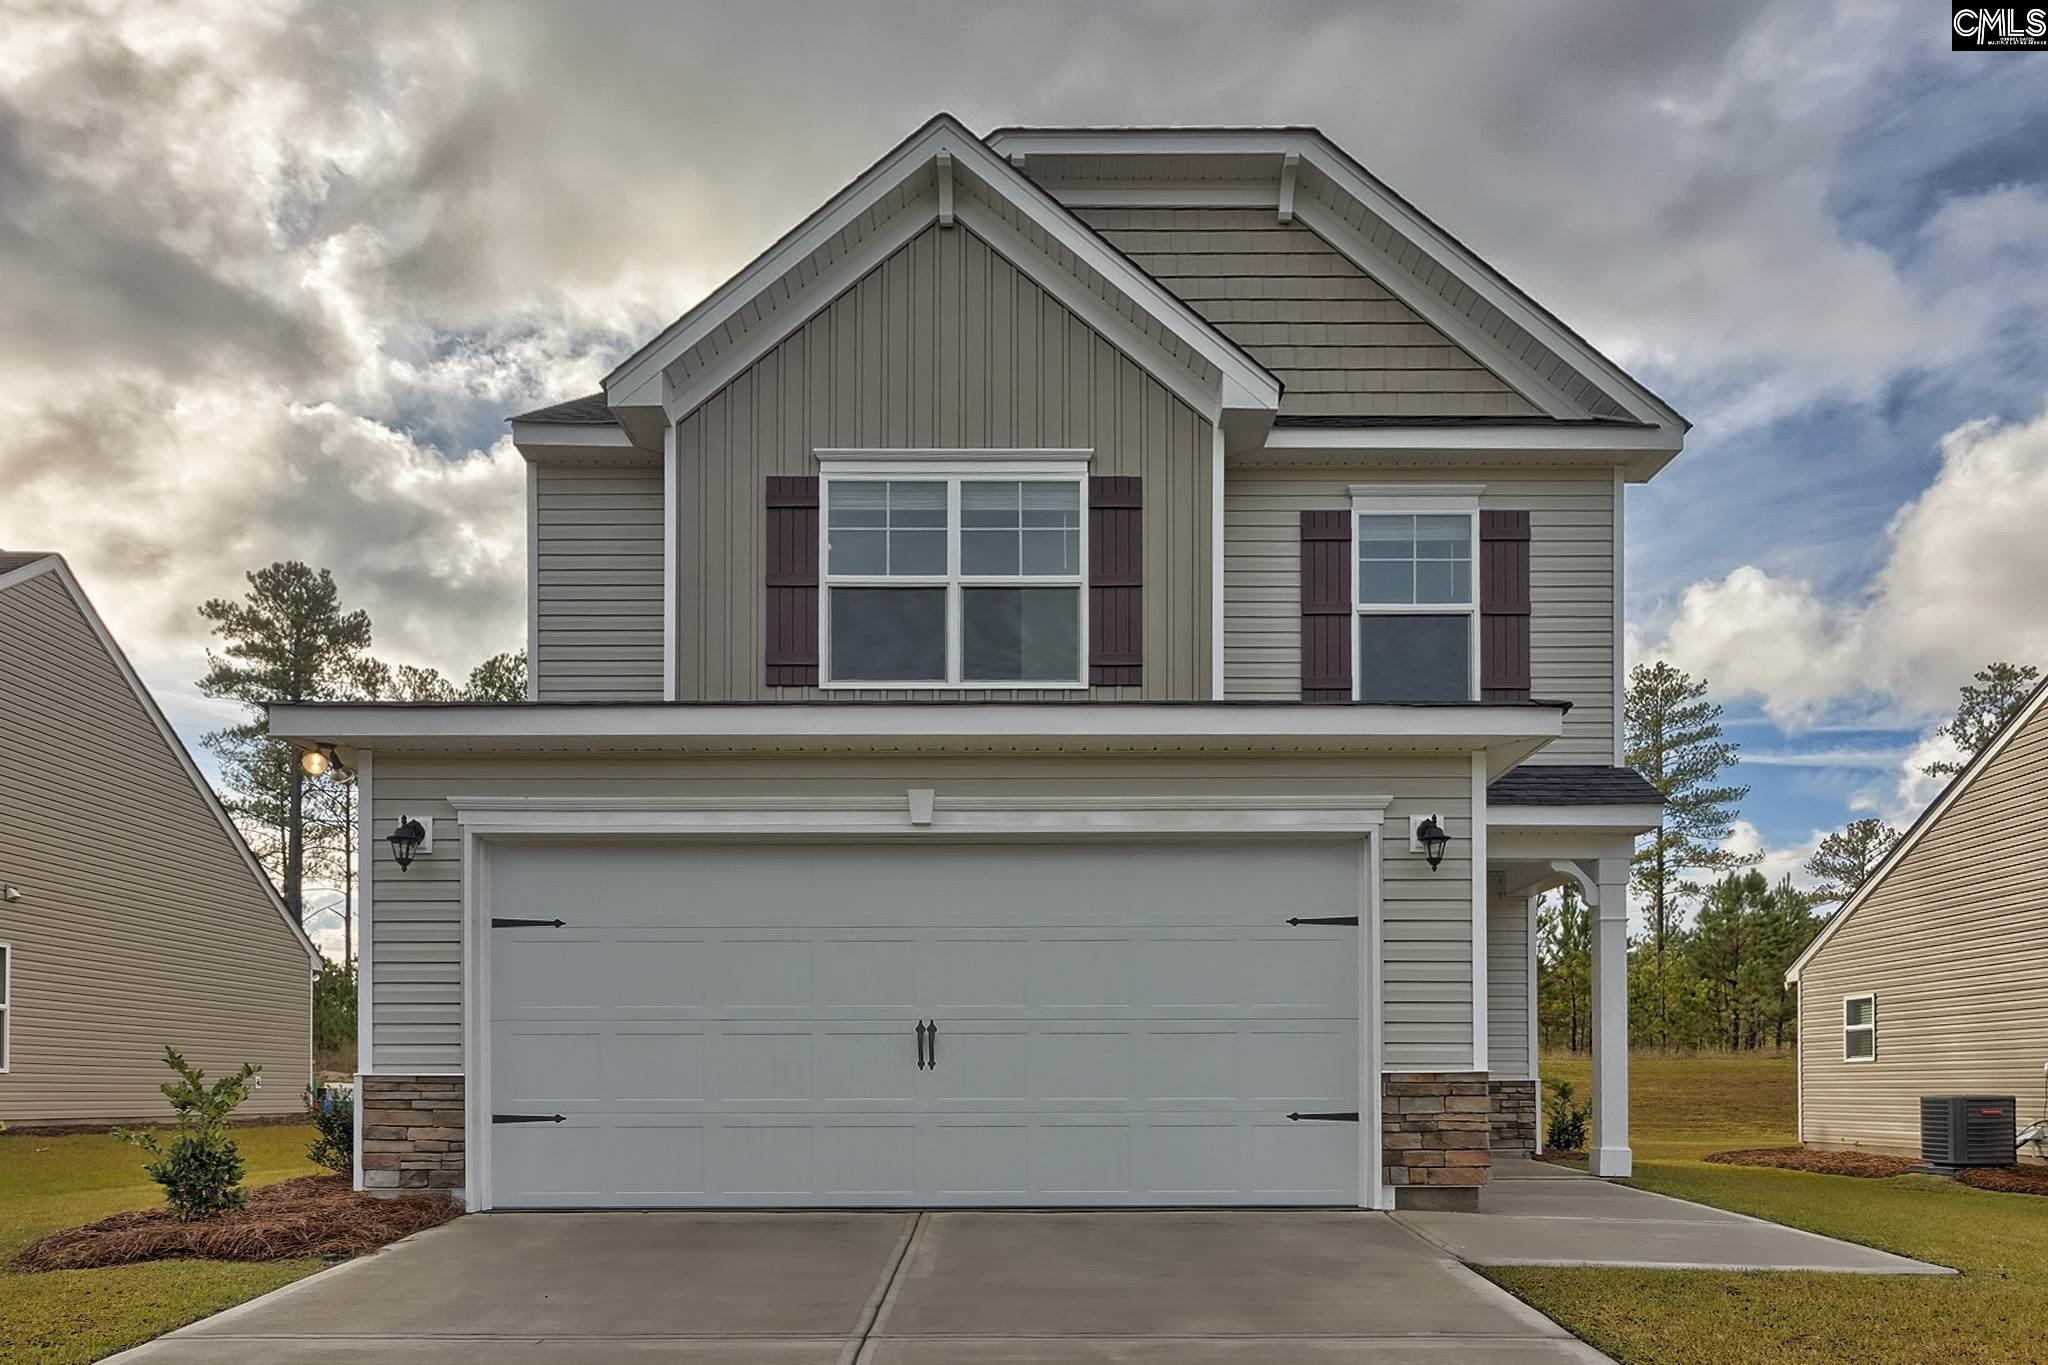 206 Turnfield West Columbia, SC 29170